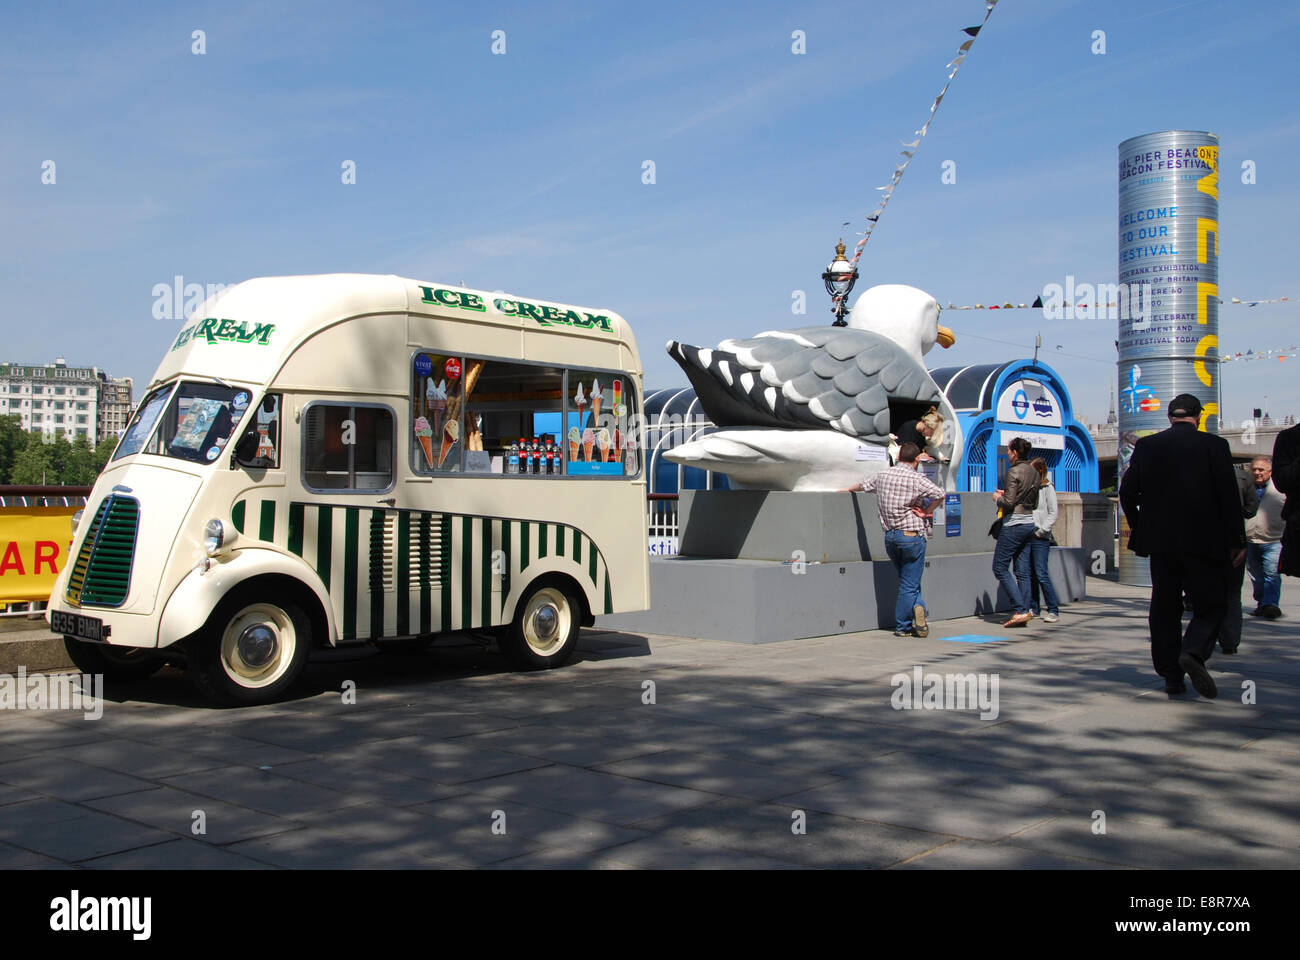 ice cream van at London's South Bank United Kingdom - Stock Image